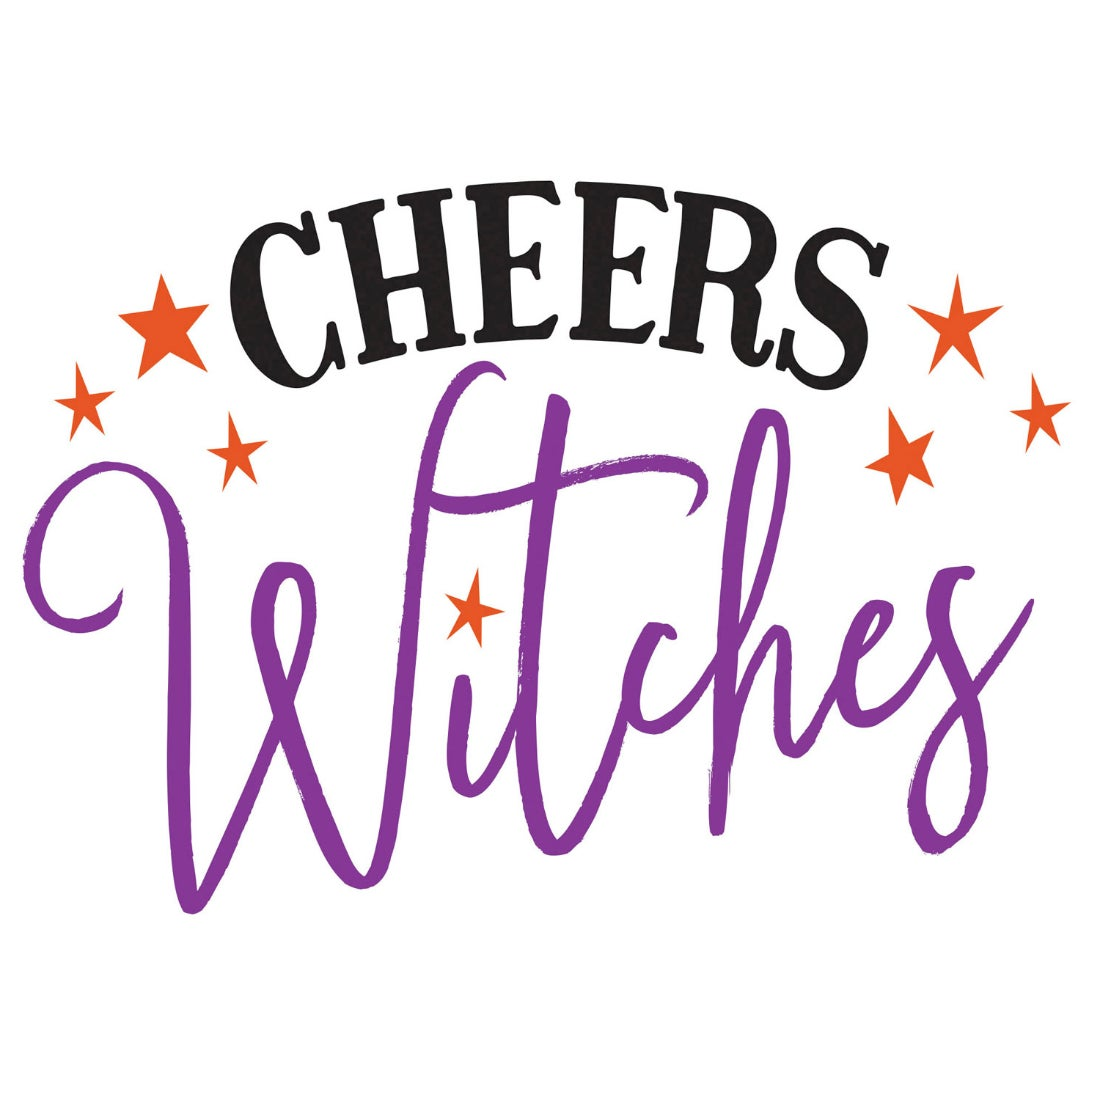 Cheers Witches Paper Cocktail Napkins, 20 count